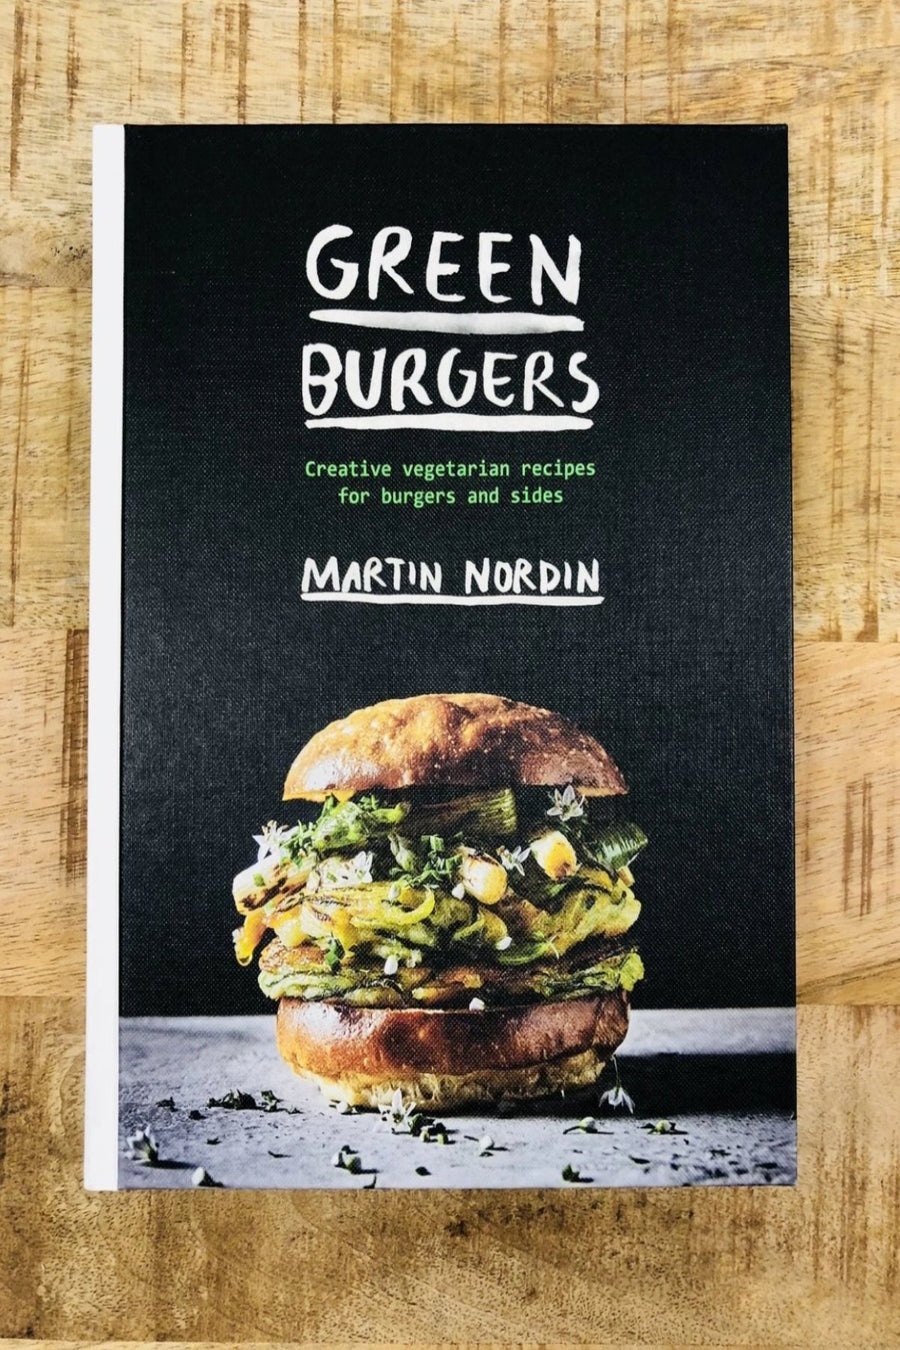 Green Burgers - Shop Online At Mookah - mookah.com.au